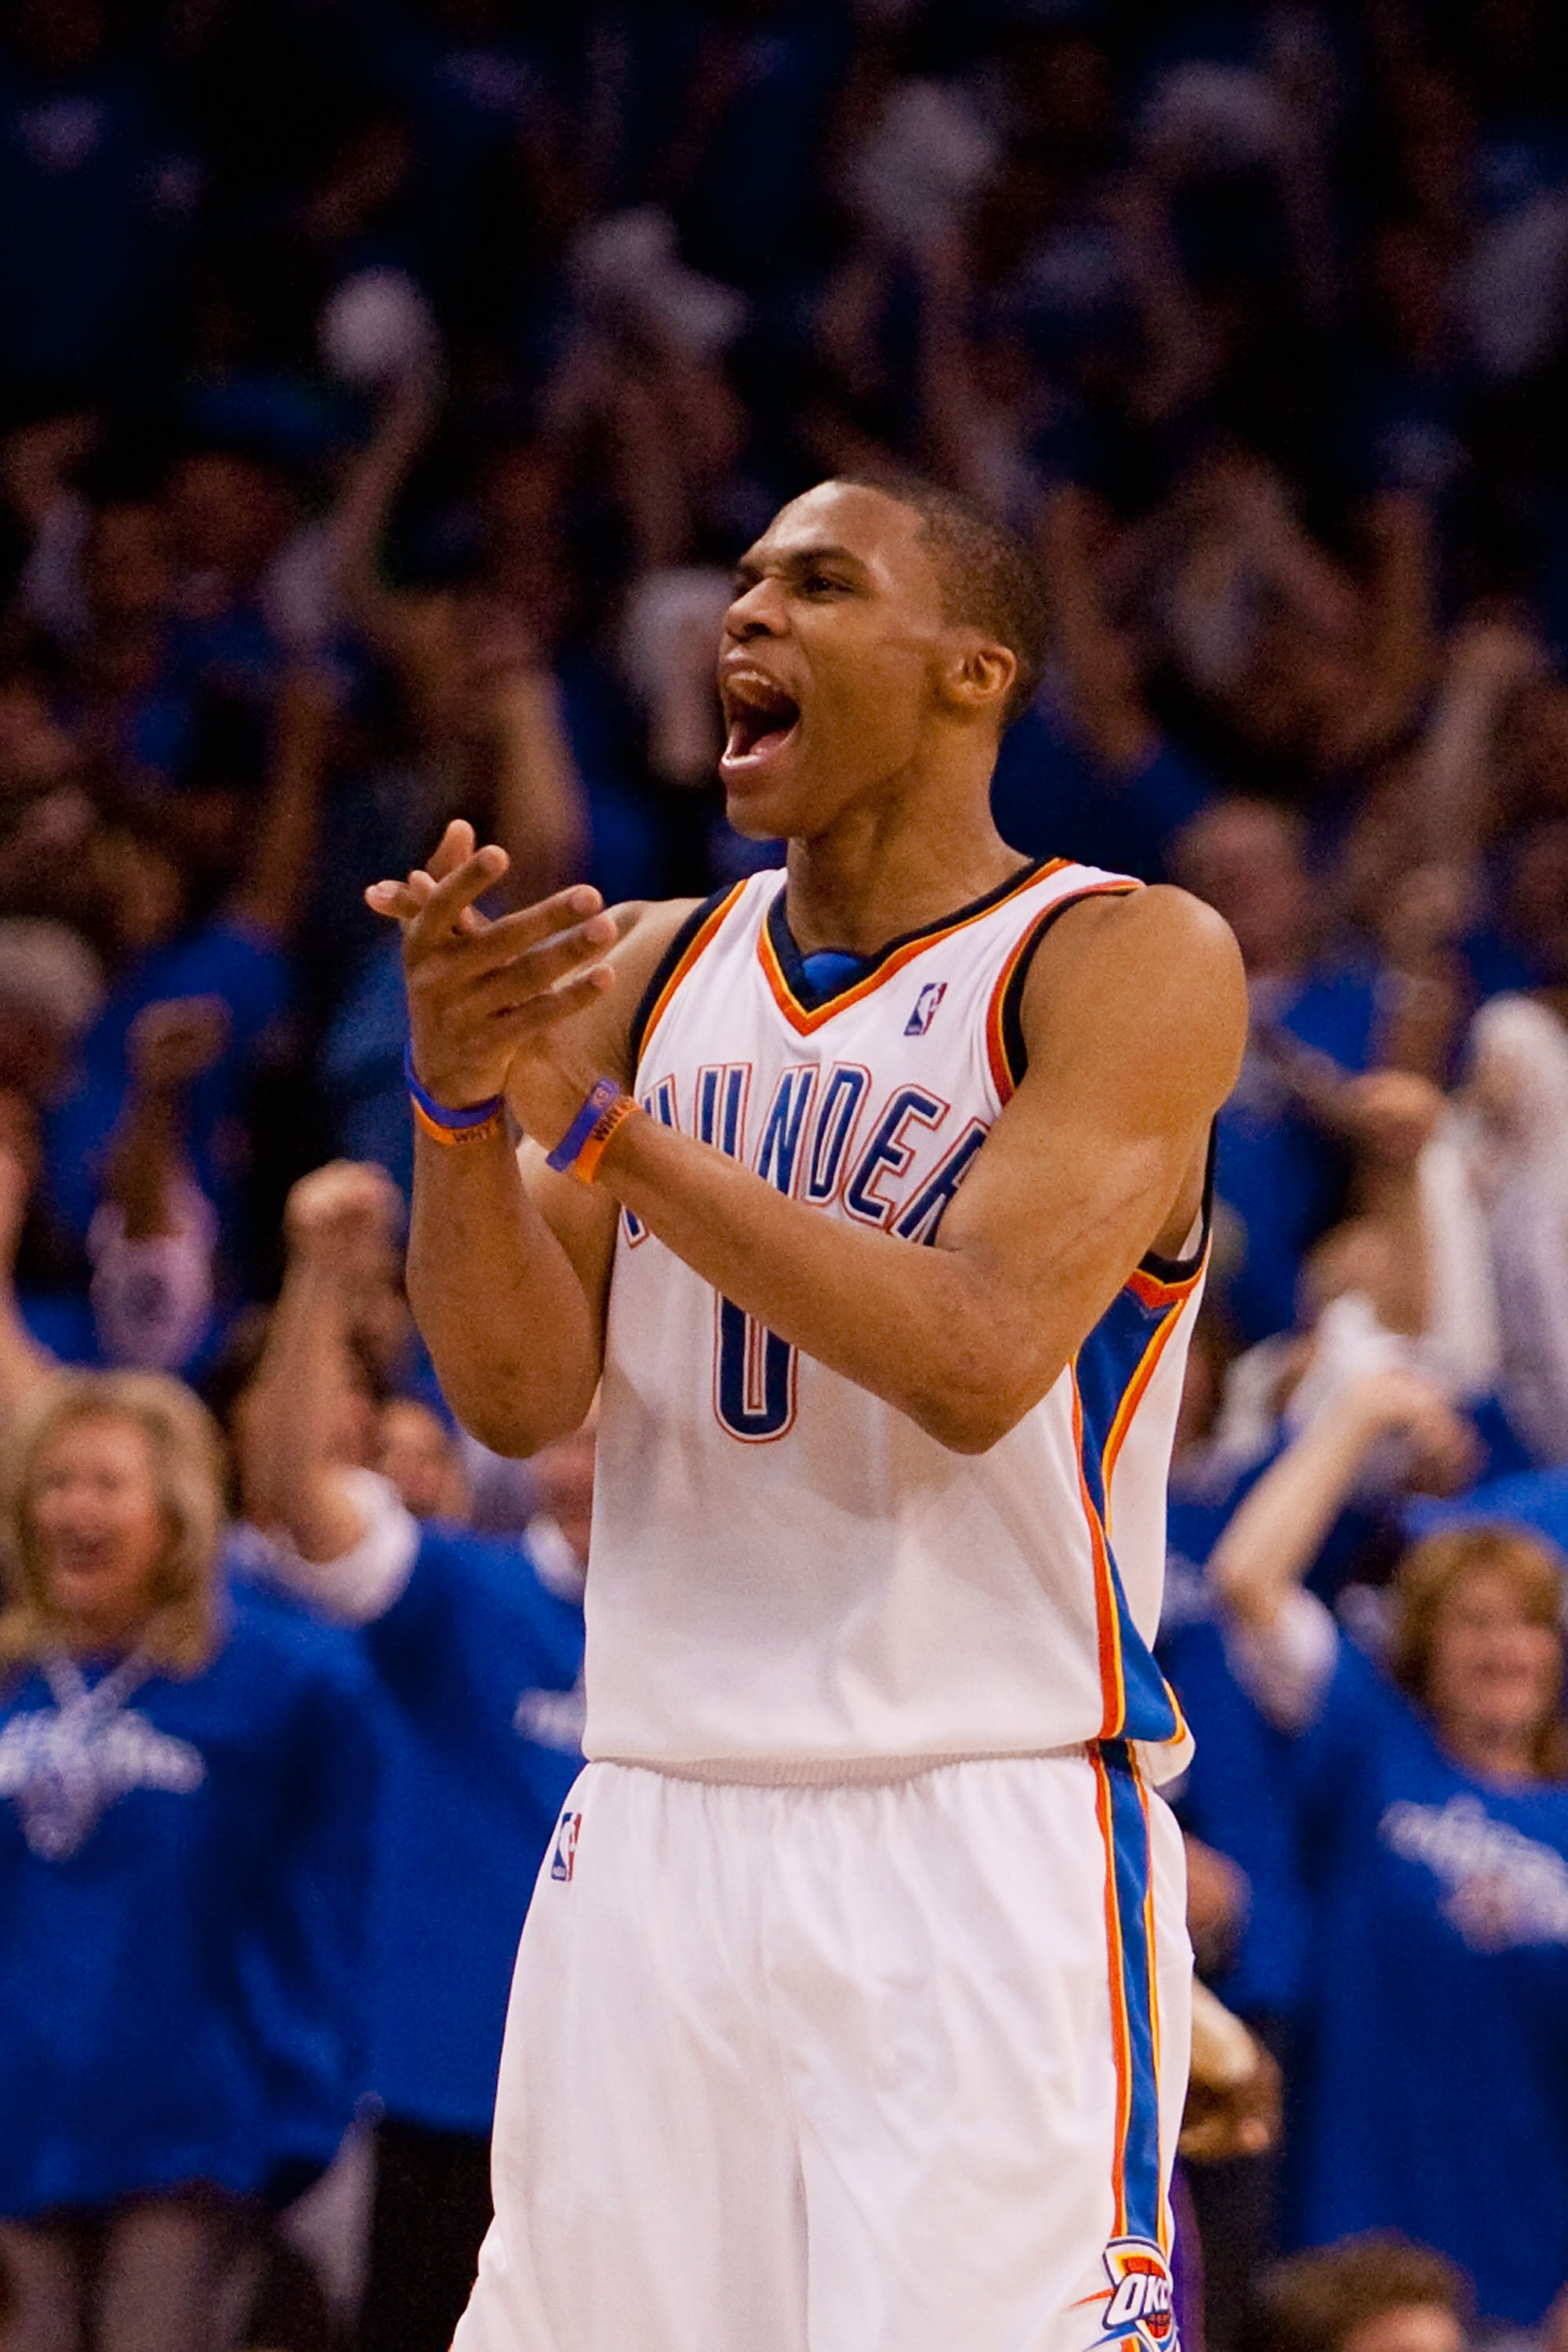 OKLAHOMA CITY - APRIL 22: Russell Westbrook #0 of the Oklahoma City Thunder celebrates a victory over the Los Angeles Lakers during Game Three of the Western Conference Quarterfinals of the 2010 NBA Playoffs on April 22, 2010 at the Ford Center in Oklahom